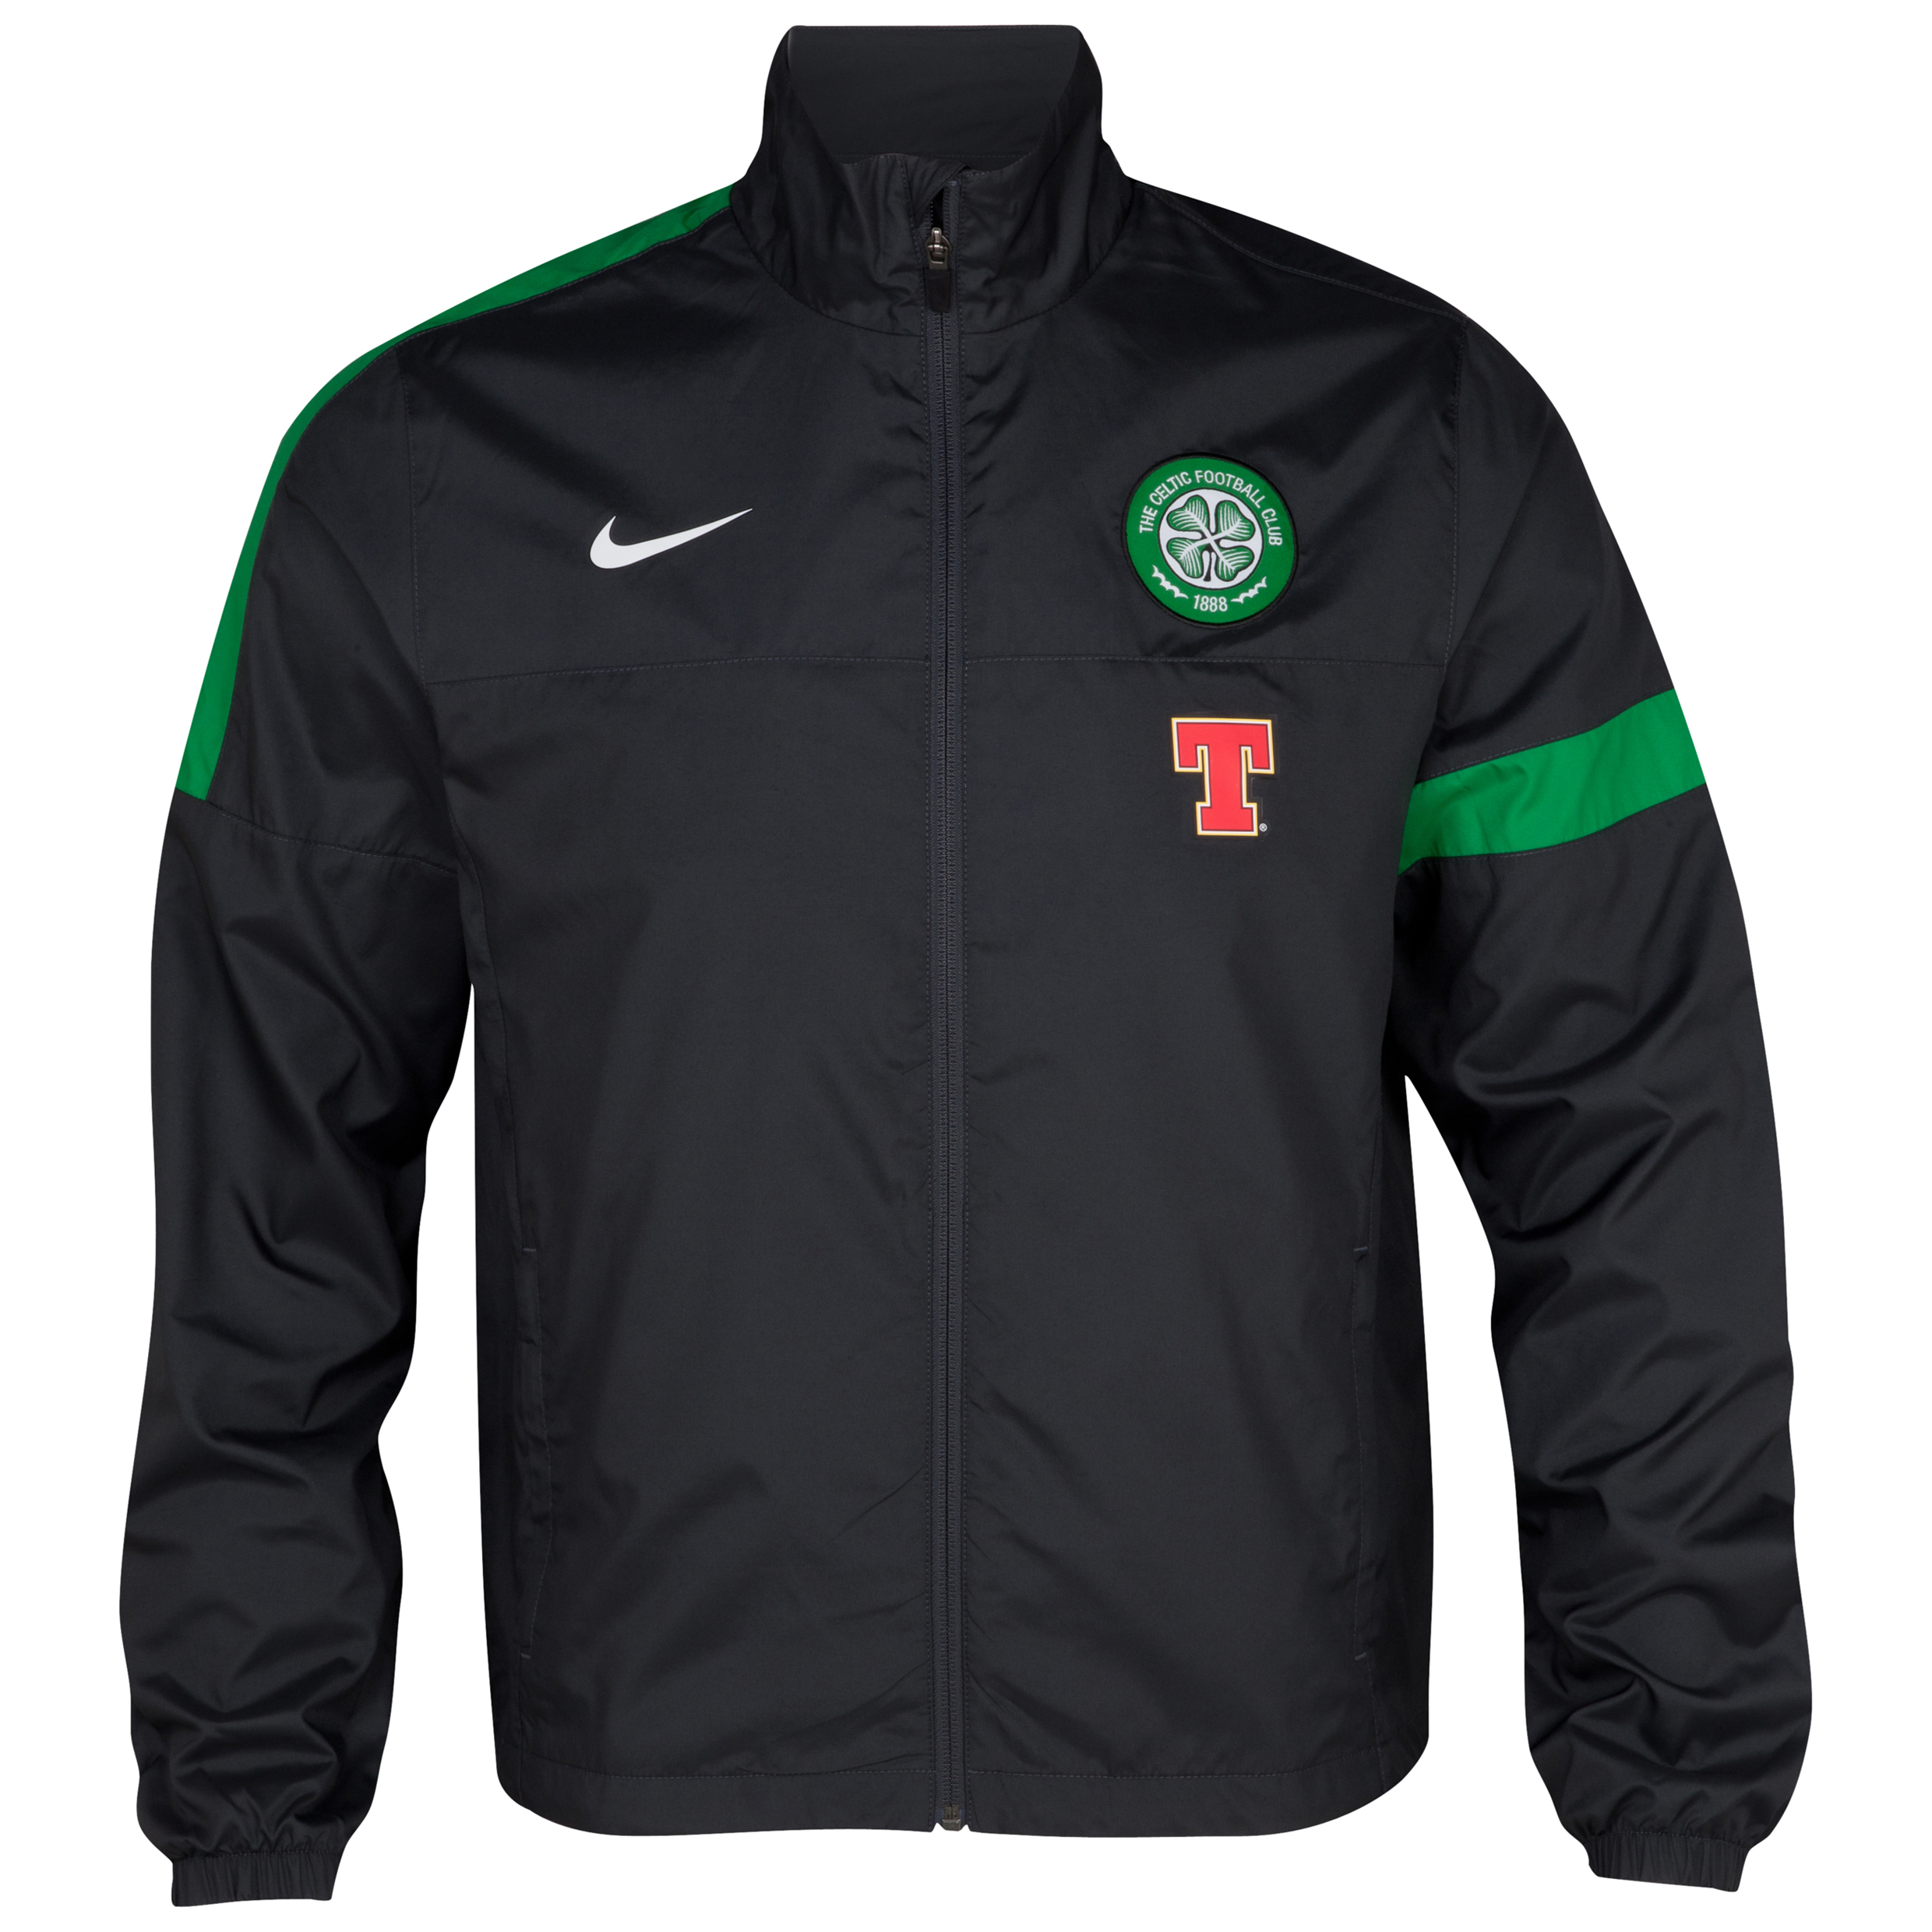 Celtic Woven Sideline Jacket - Anthracite/Anthracite/White